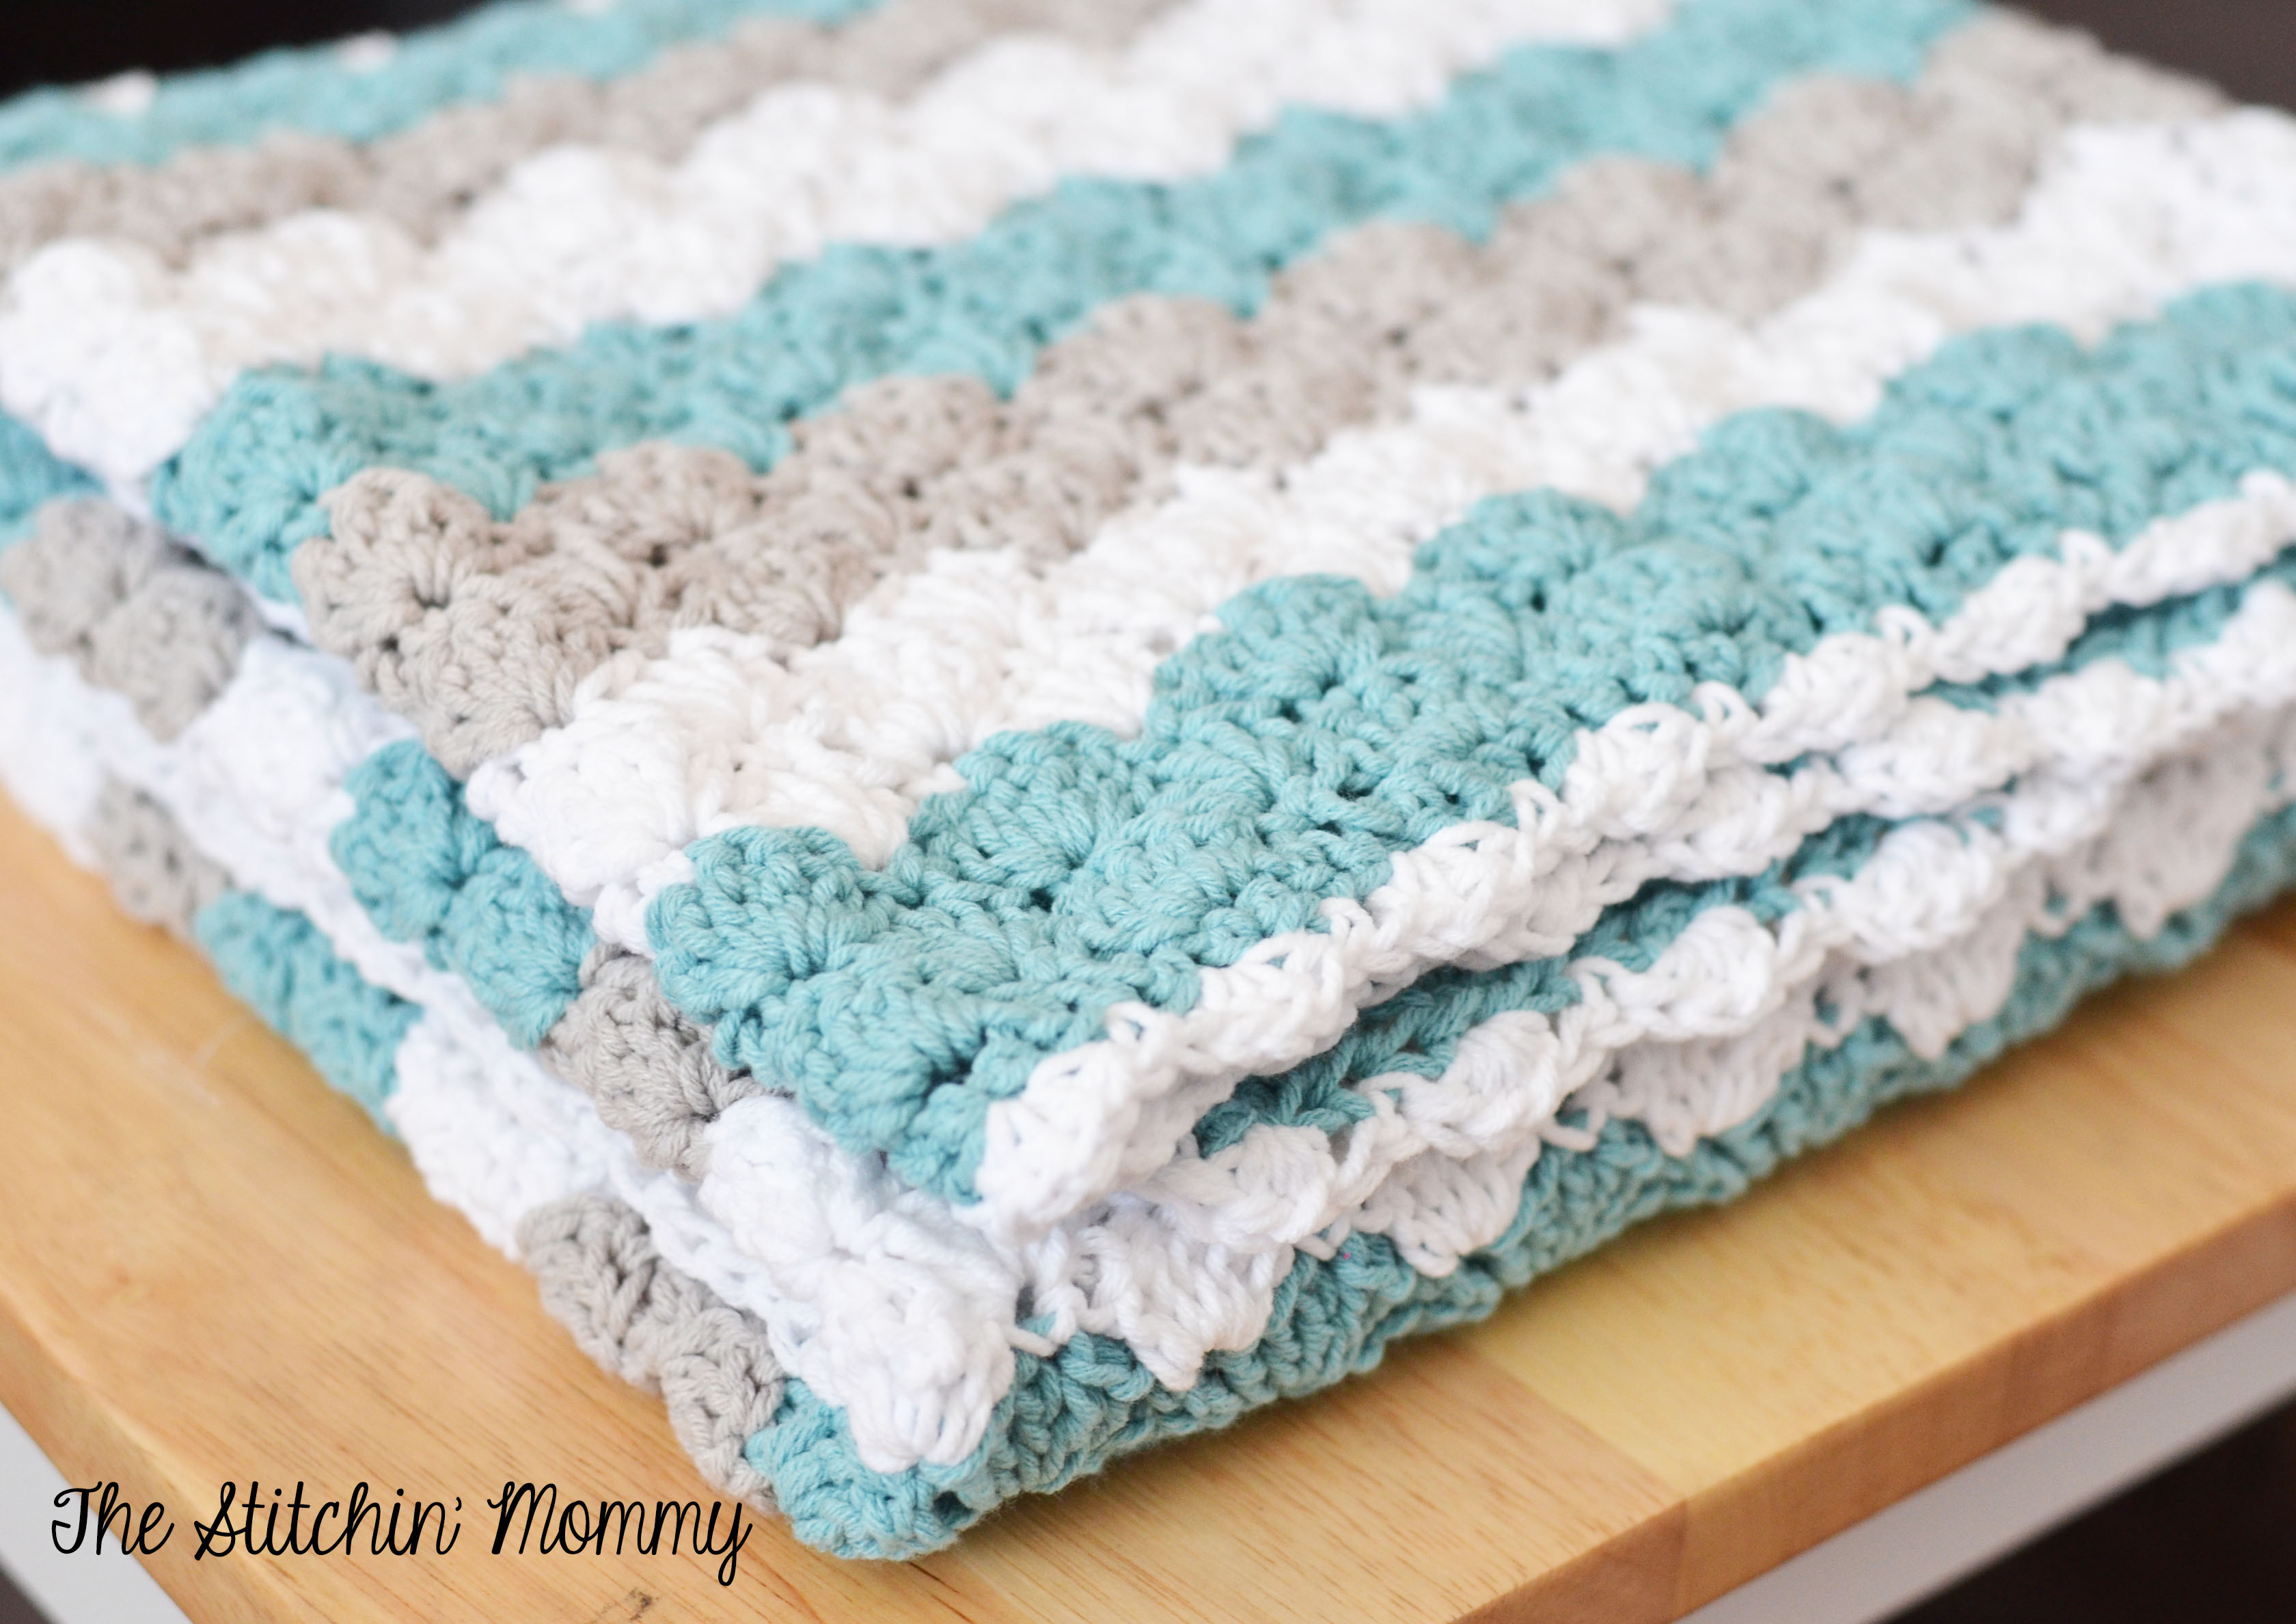 Crochet Stitches Video Free : Crochet Shell Stitch Baby Blanket by The Stitchin Mommy www ...